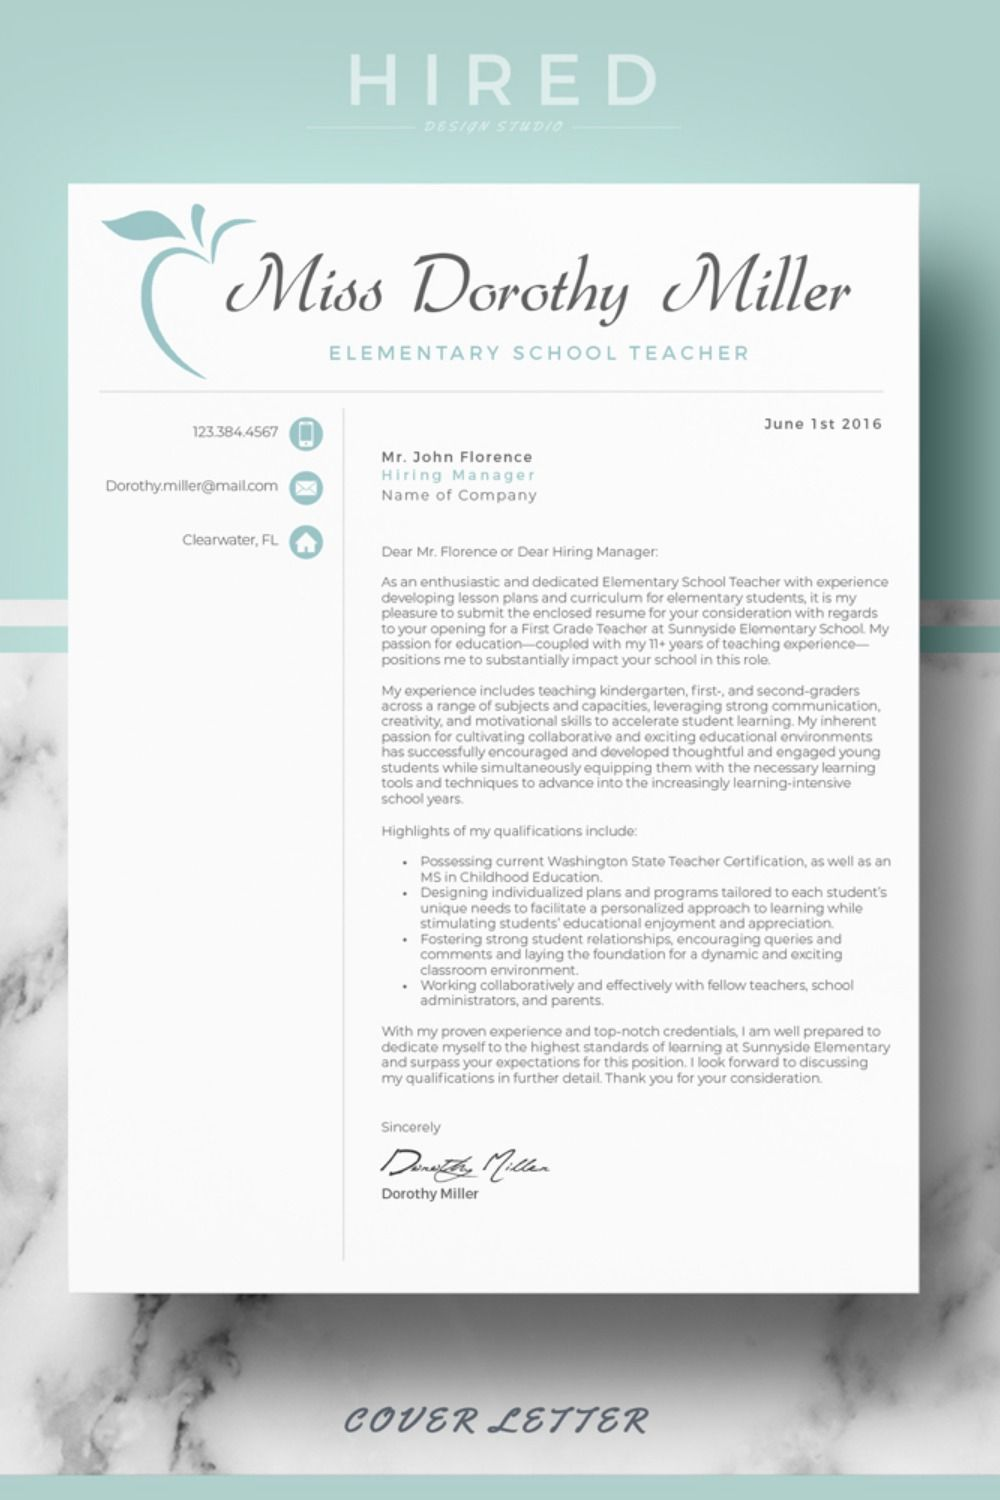 Cover Letter format for Elementary Teacher CV Resume Template Layout References page